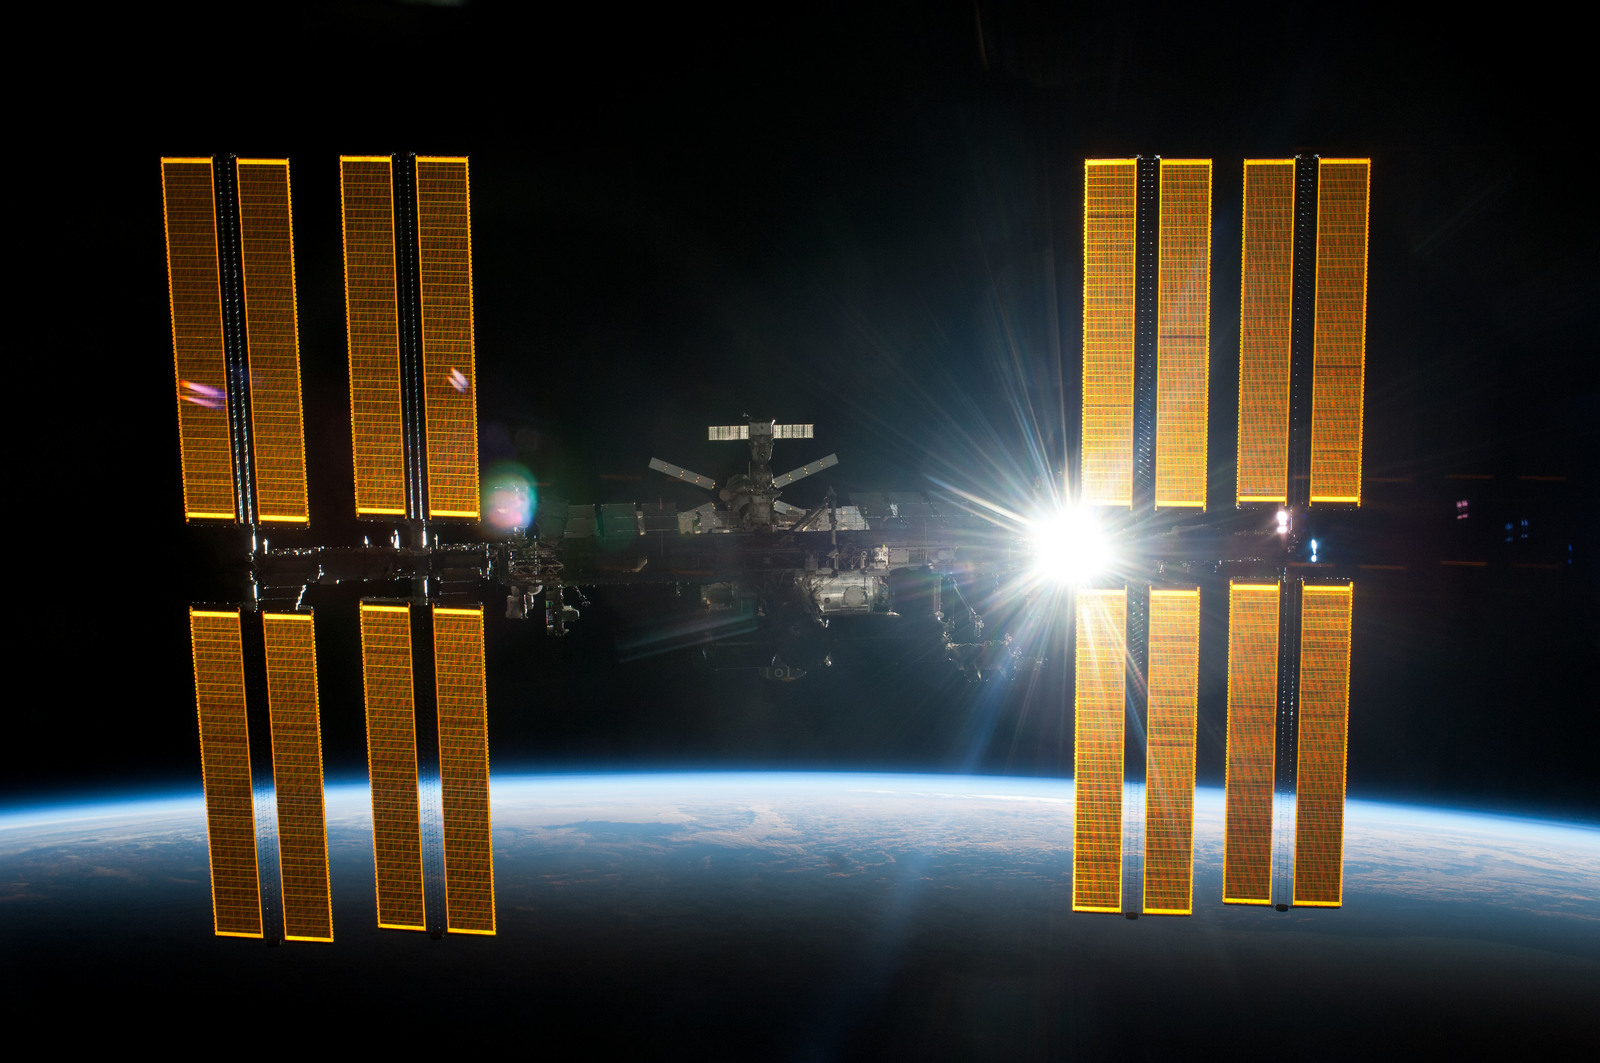 S134E011413 - STS-134 - Overall view of ISS